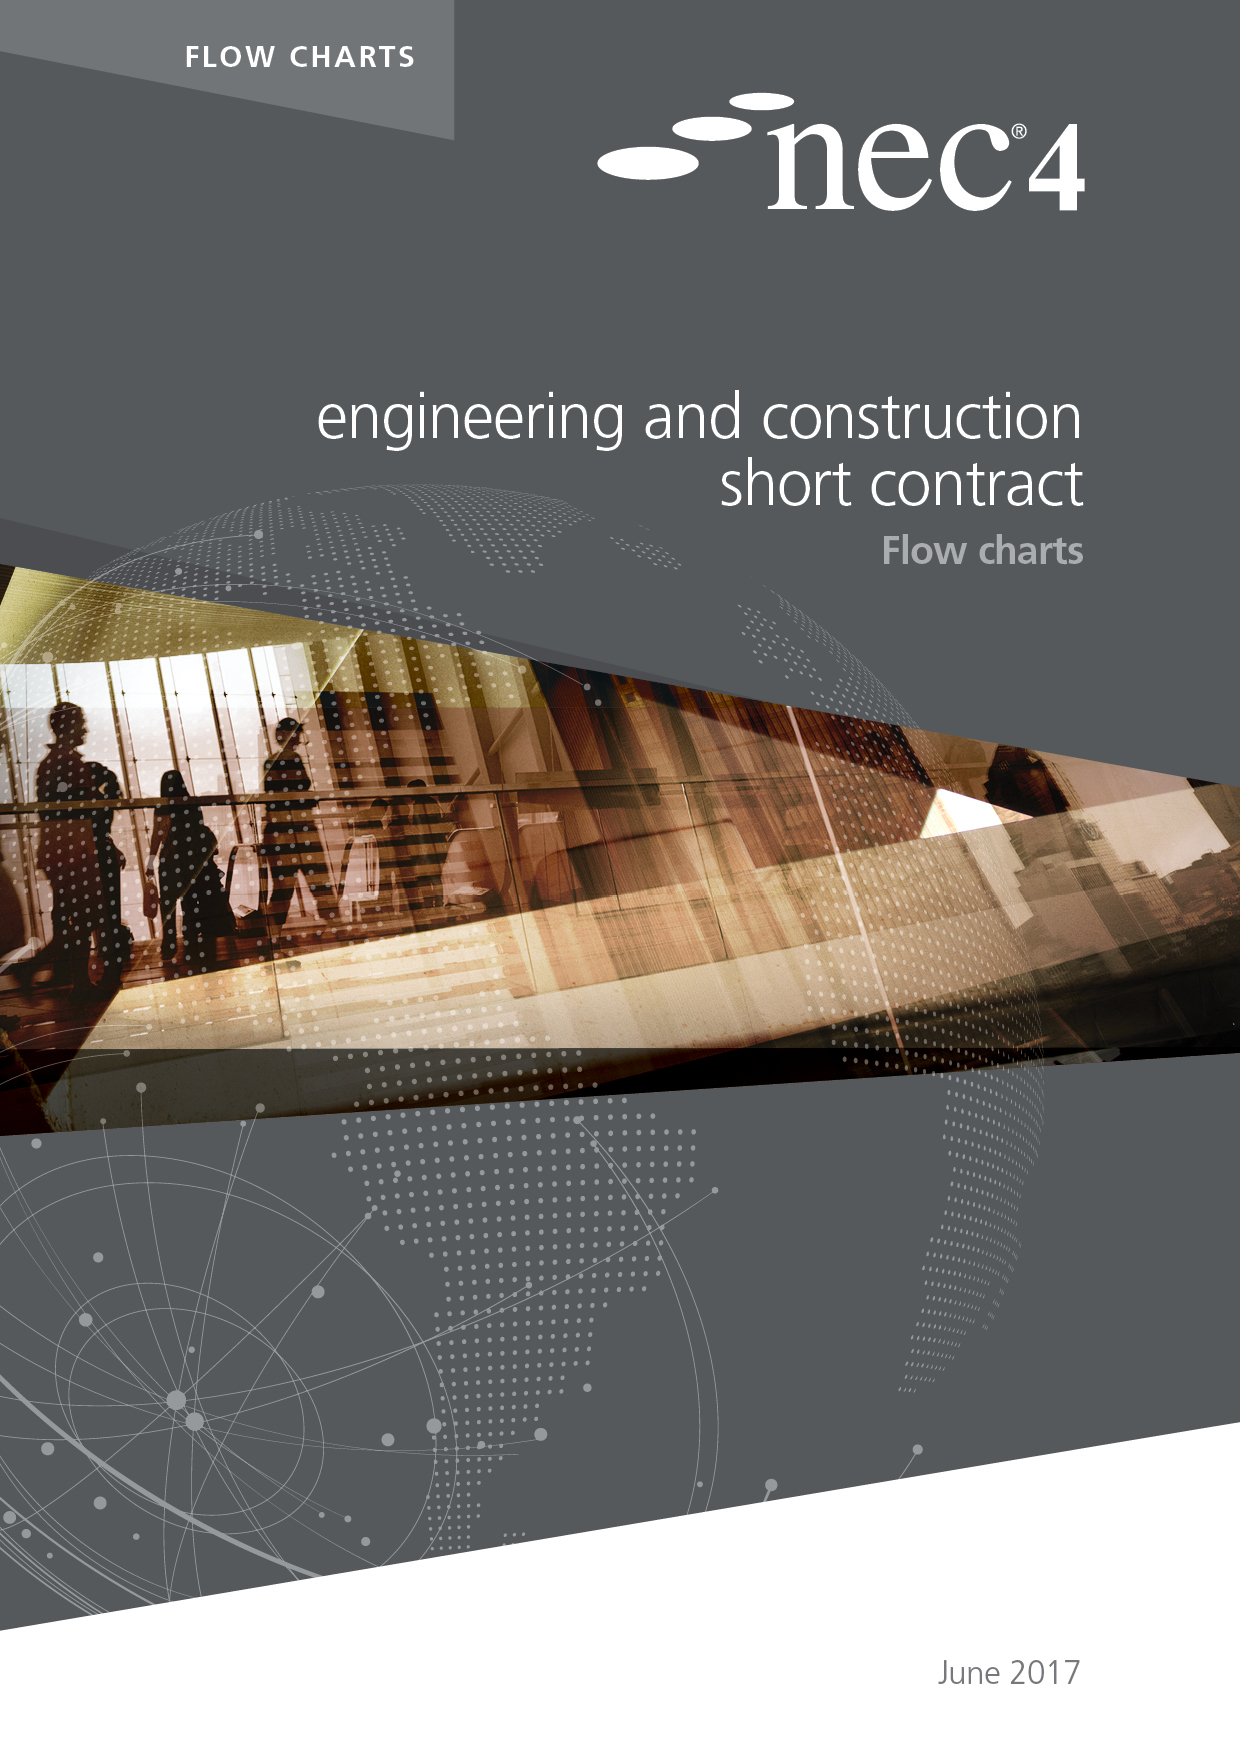 NEC4: Engineering and Construction Short Contract Flow Charts